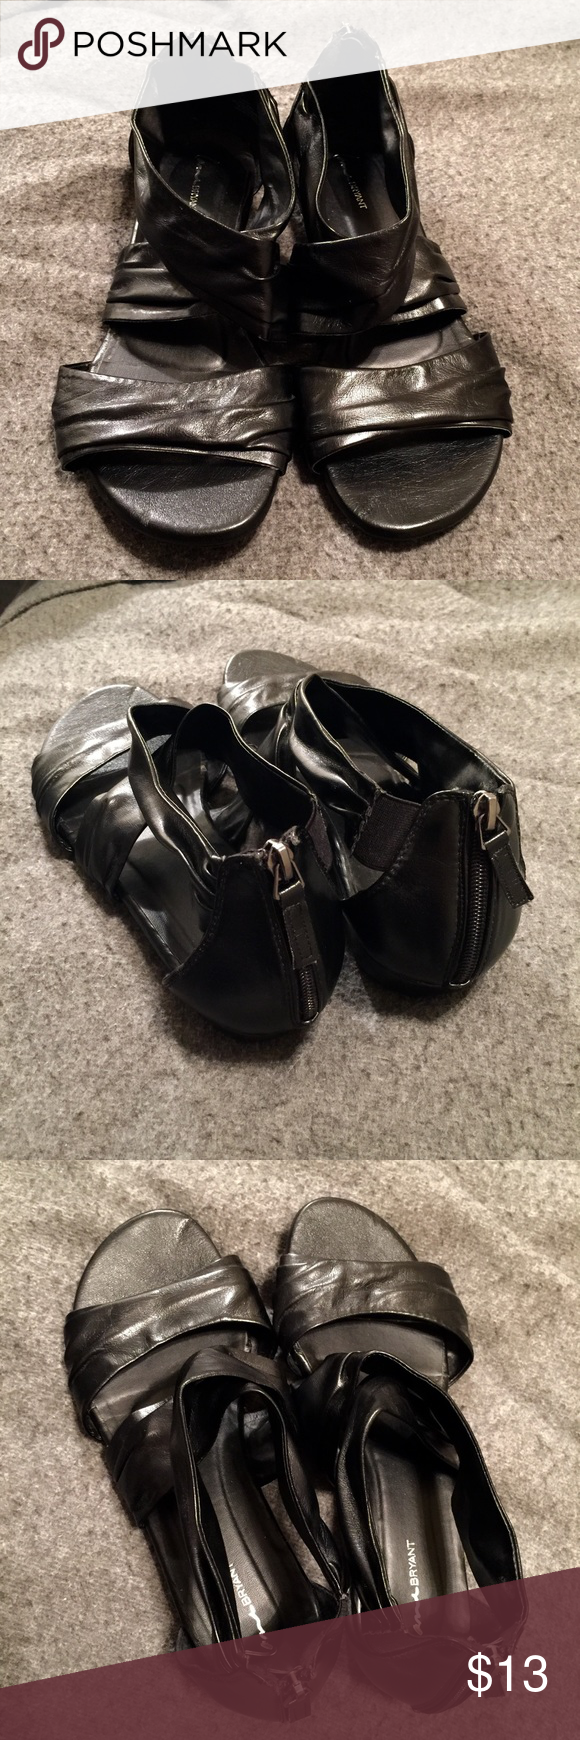 Womens sandals that zip up the back - Black Wrap Sandals